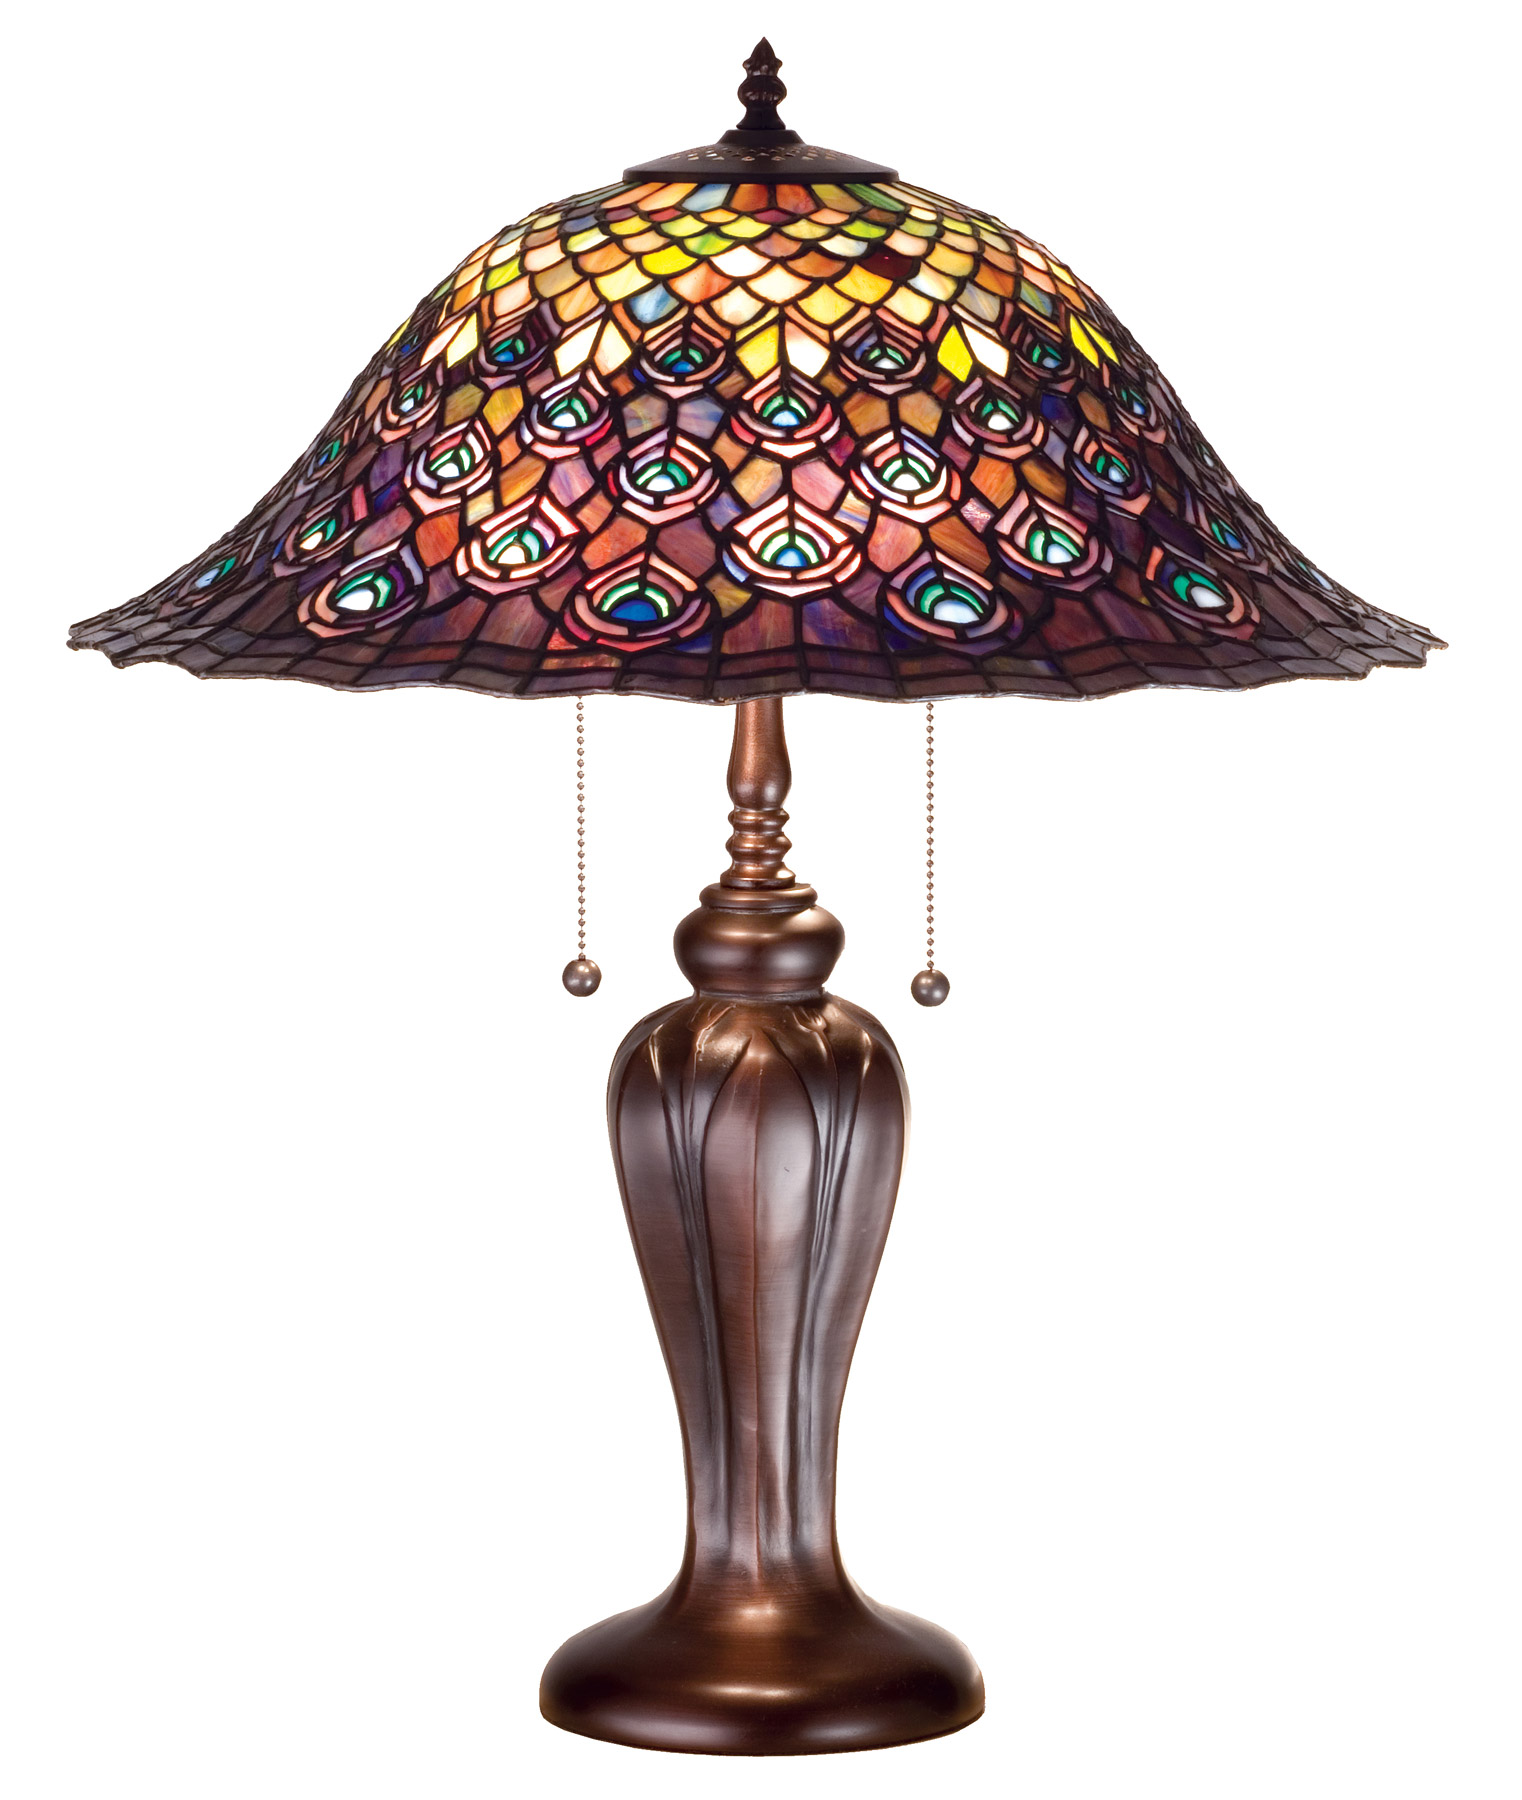 home lamps table lamps standard table lamps meyda 26666. Black Bedroom Furniture Sets. Home Design Ideas